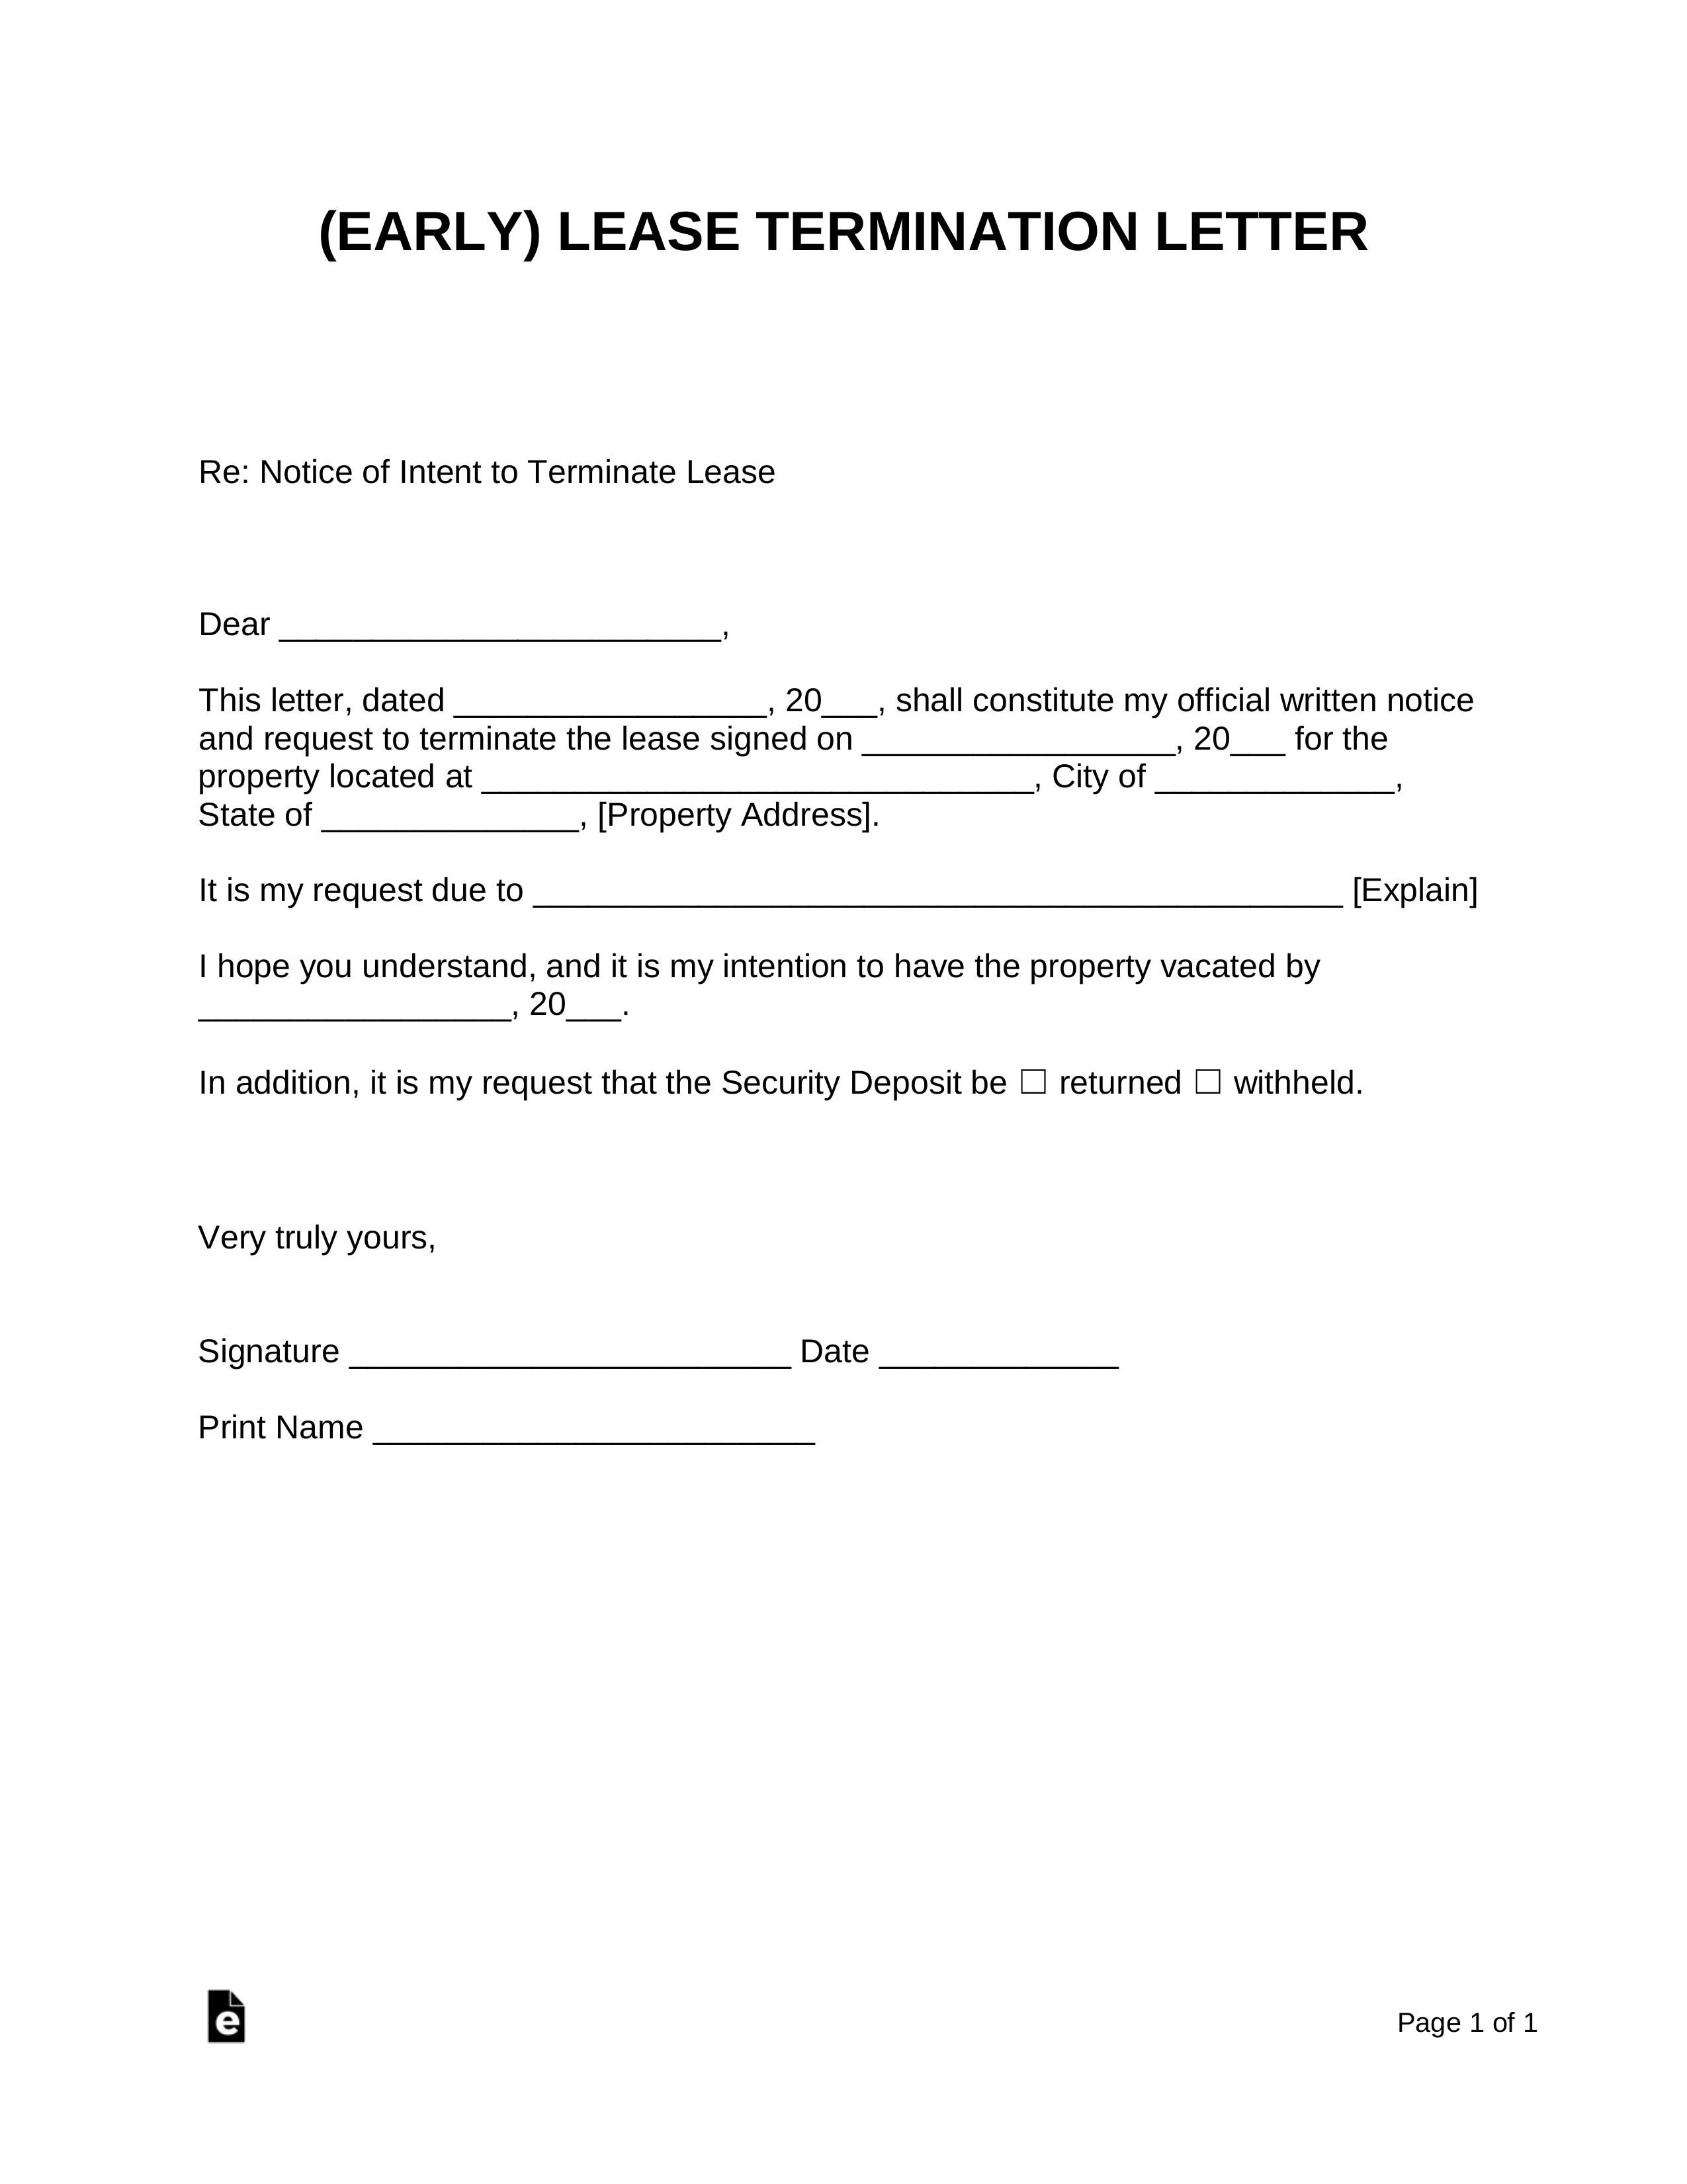 Early Lease Termination Template